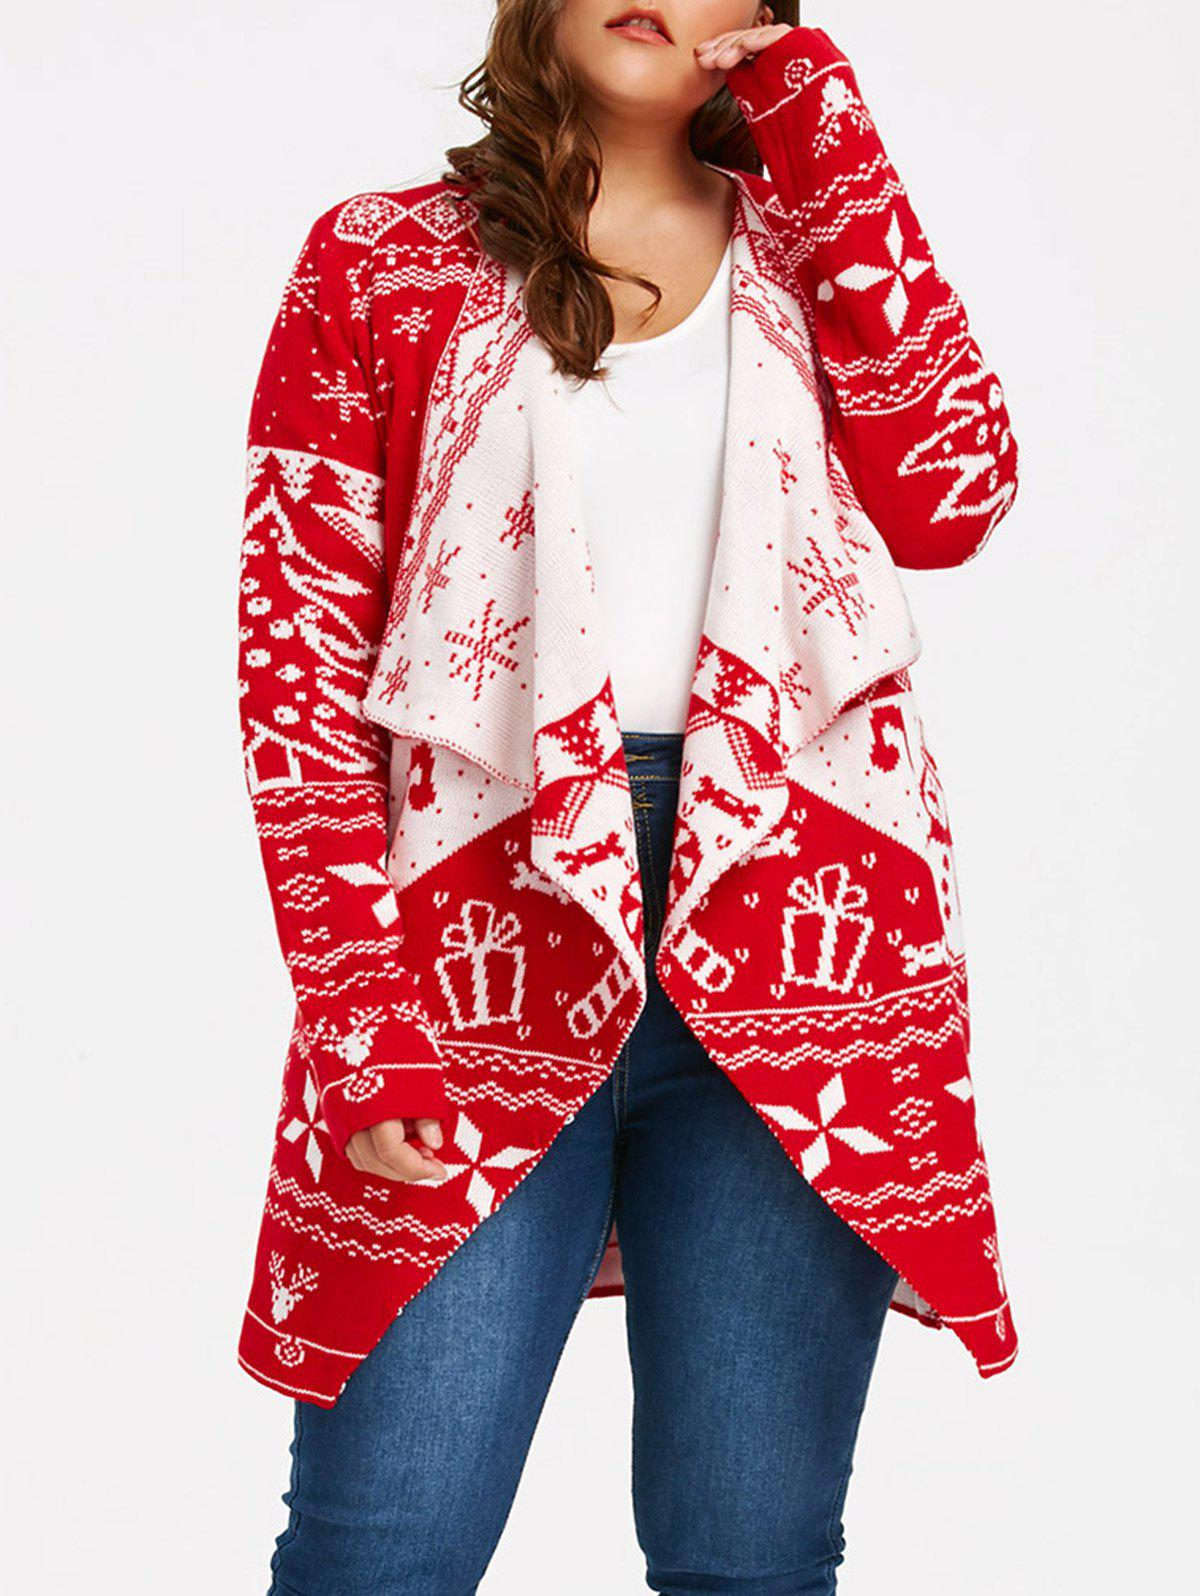 Christmas Element Plus Size Draped CardiganWOMEN<br><br>Size: 3XL; Color: RED; Type: Cardigans; Material: Acrylic,Spandex; Sleeve Length: Full; Collar: Collarless; Style: Casual; Season: Fall,Spring,Winter; Pattern Type: Others; Elasticity: Micro-elastic; Weight: 0.6800kg; Package Contents: 1 x Cardigan;